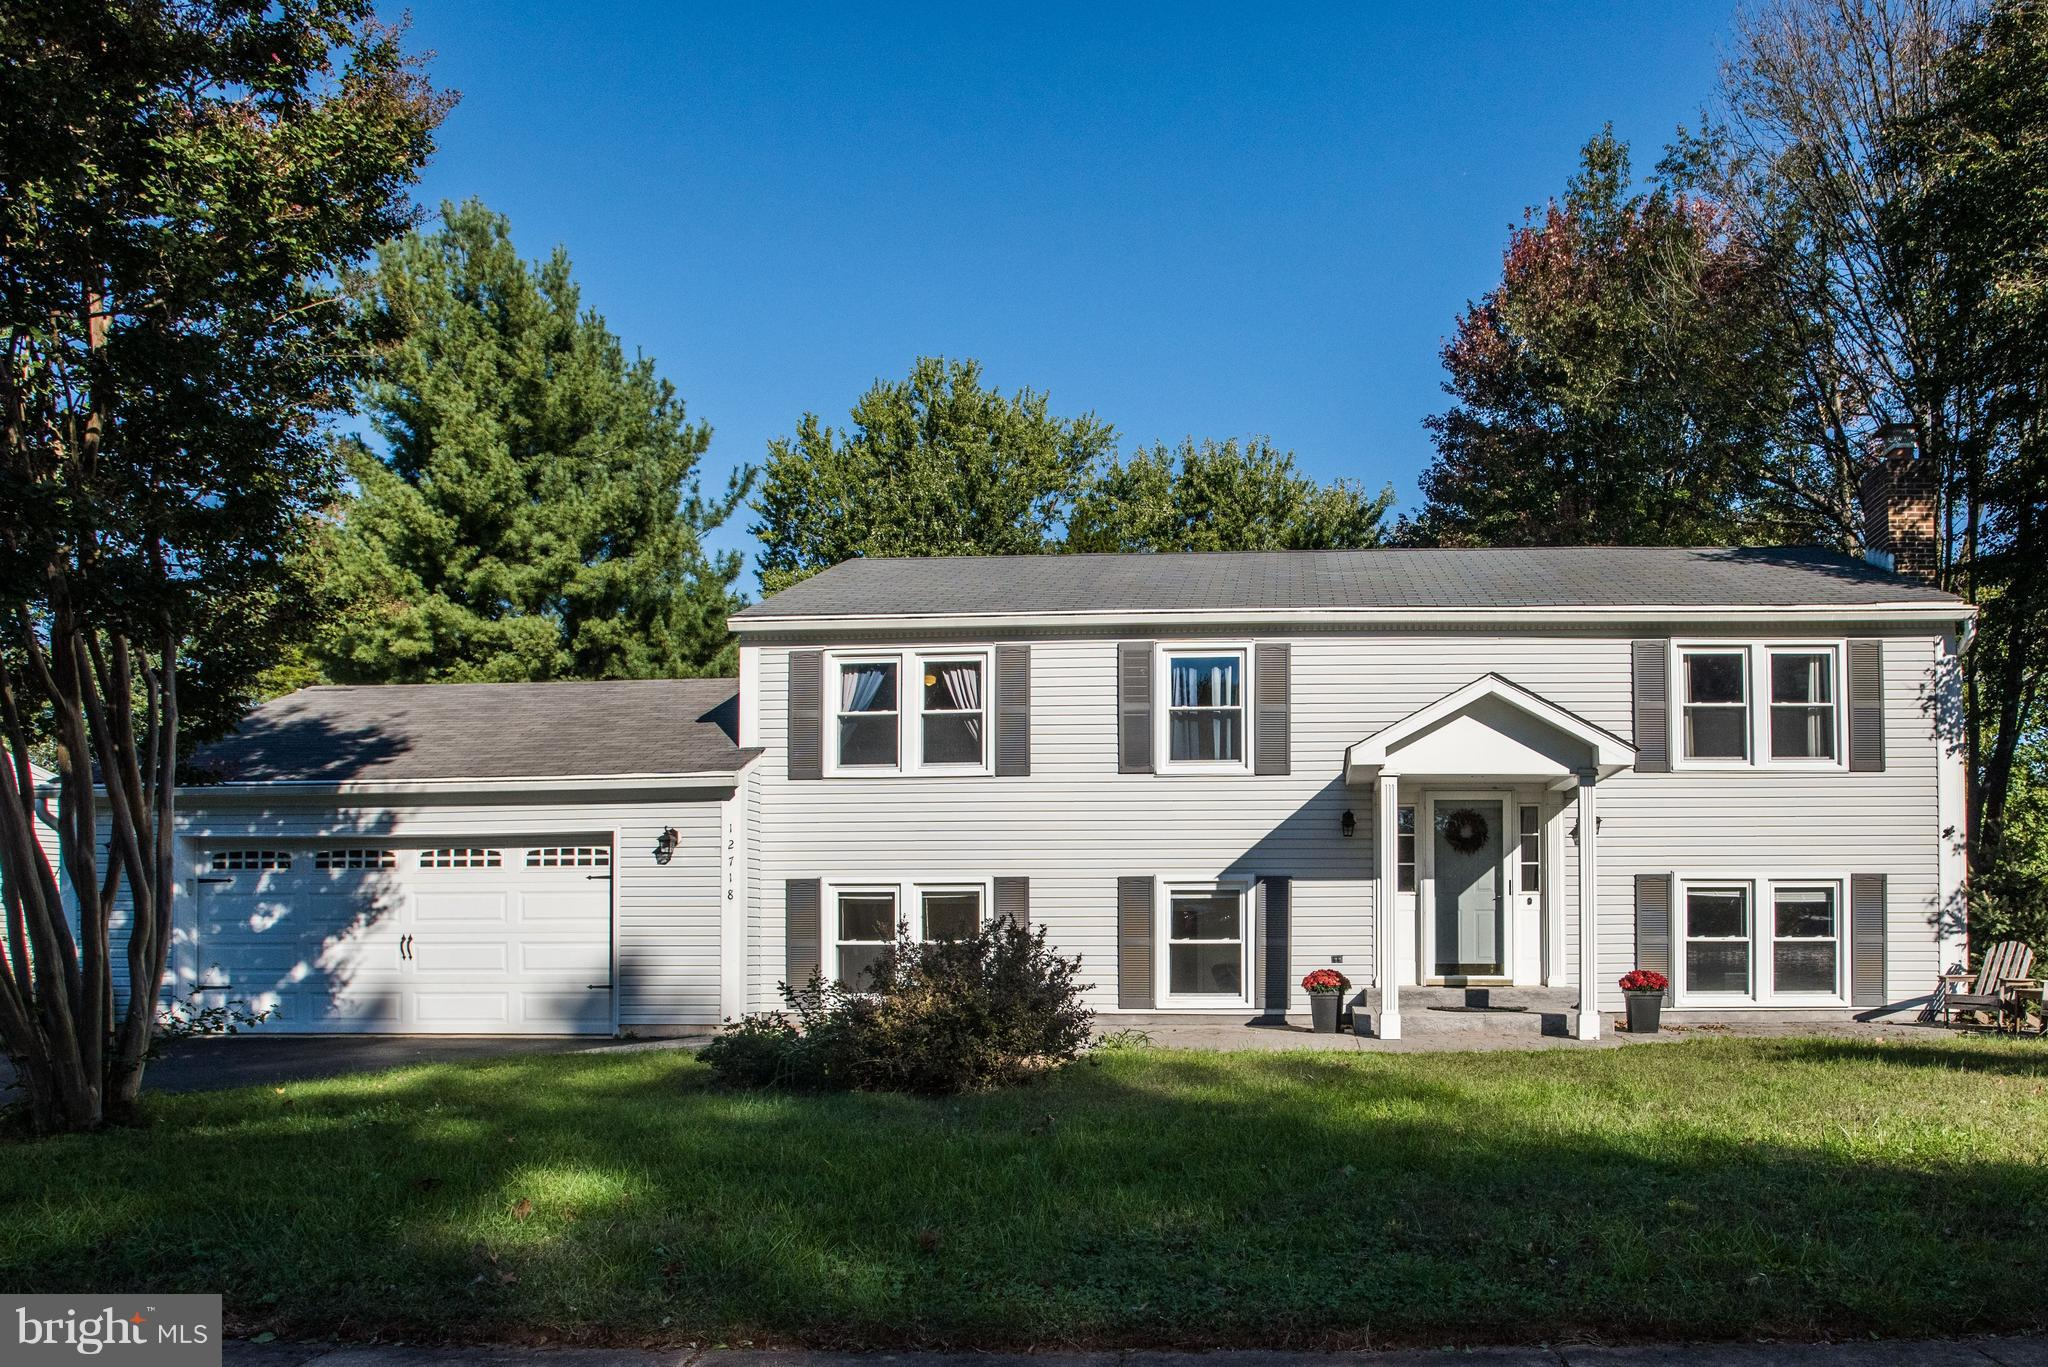 Well maintained home w/lrg family room add in Fox Mill Estates. MBR w/ Walk in Closet & MBA. Walkout